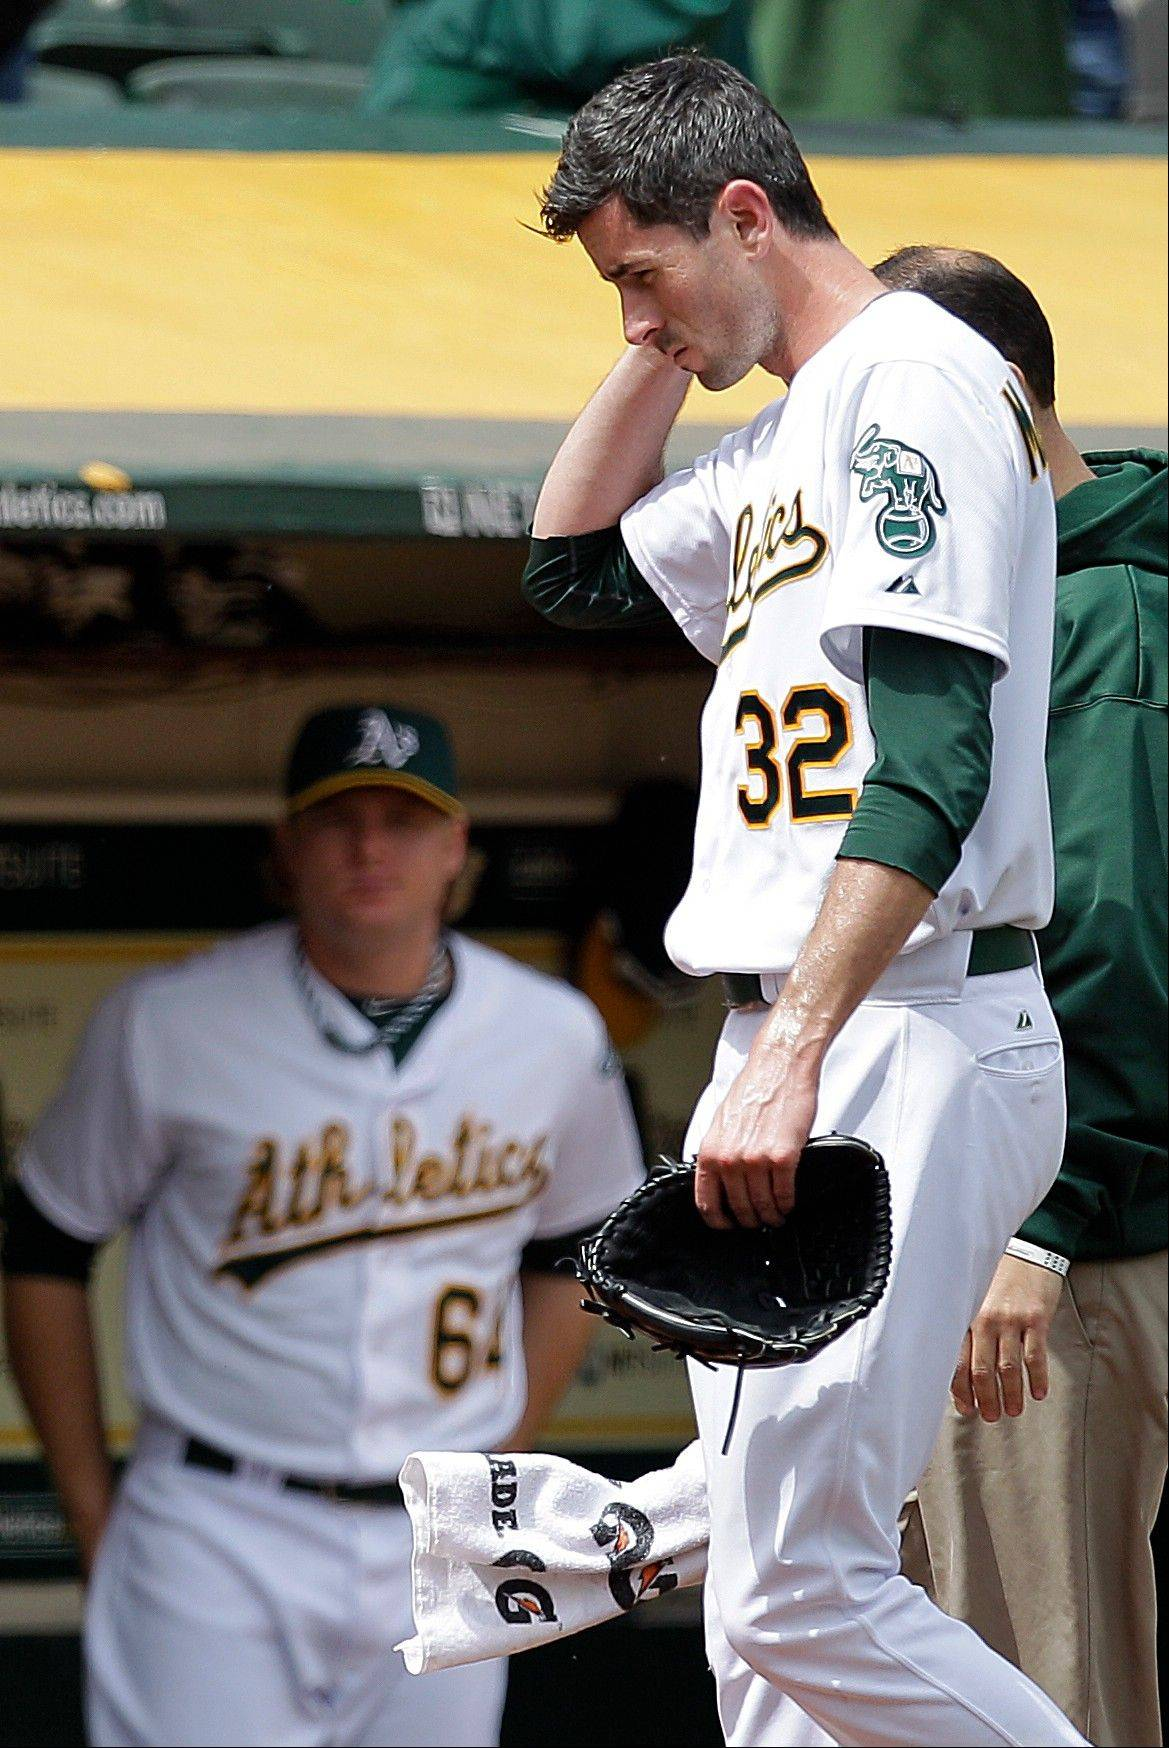 Oakland Athletics pitcher Brandon McCarthy leaves the game after being struck in the head on Wednesday.